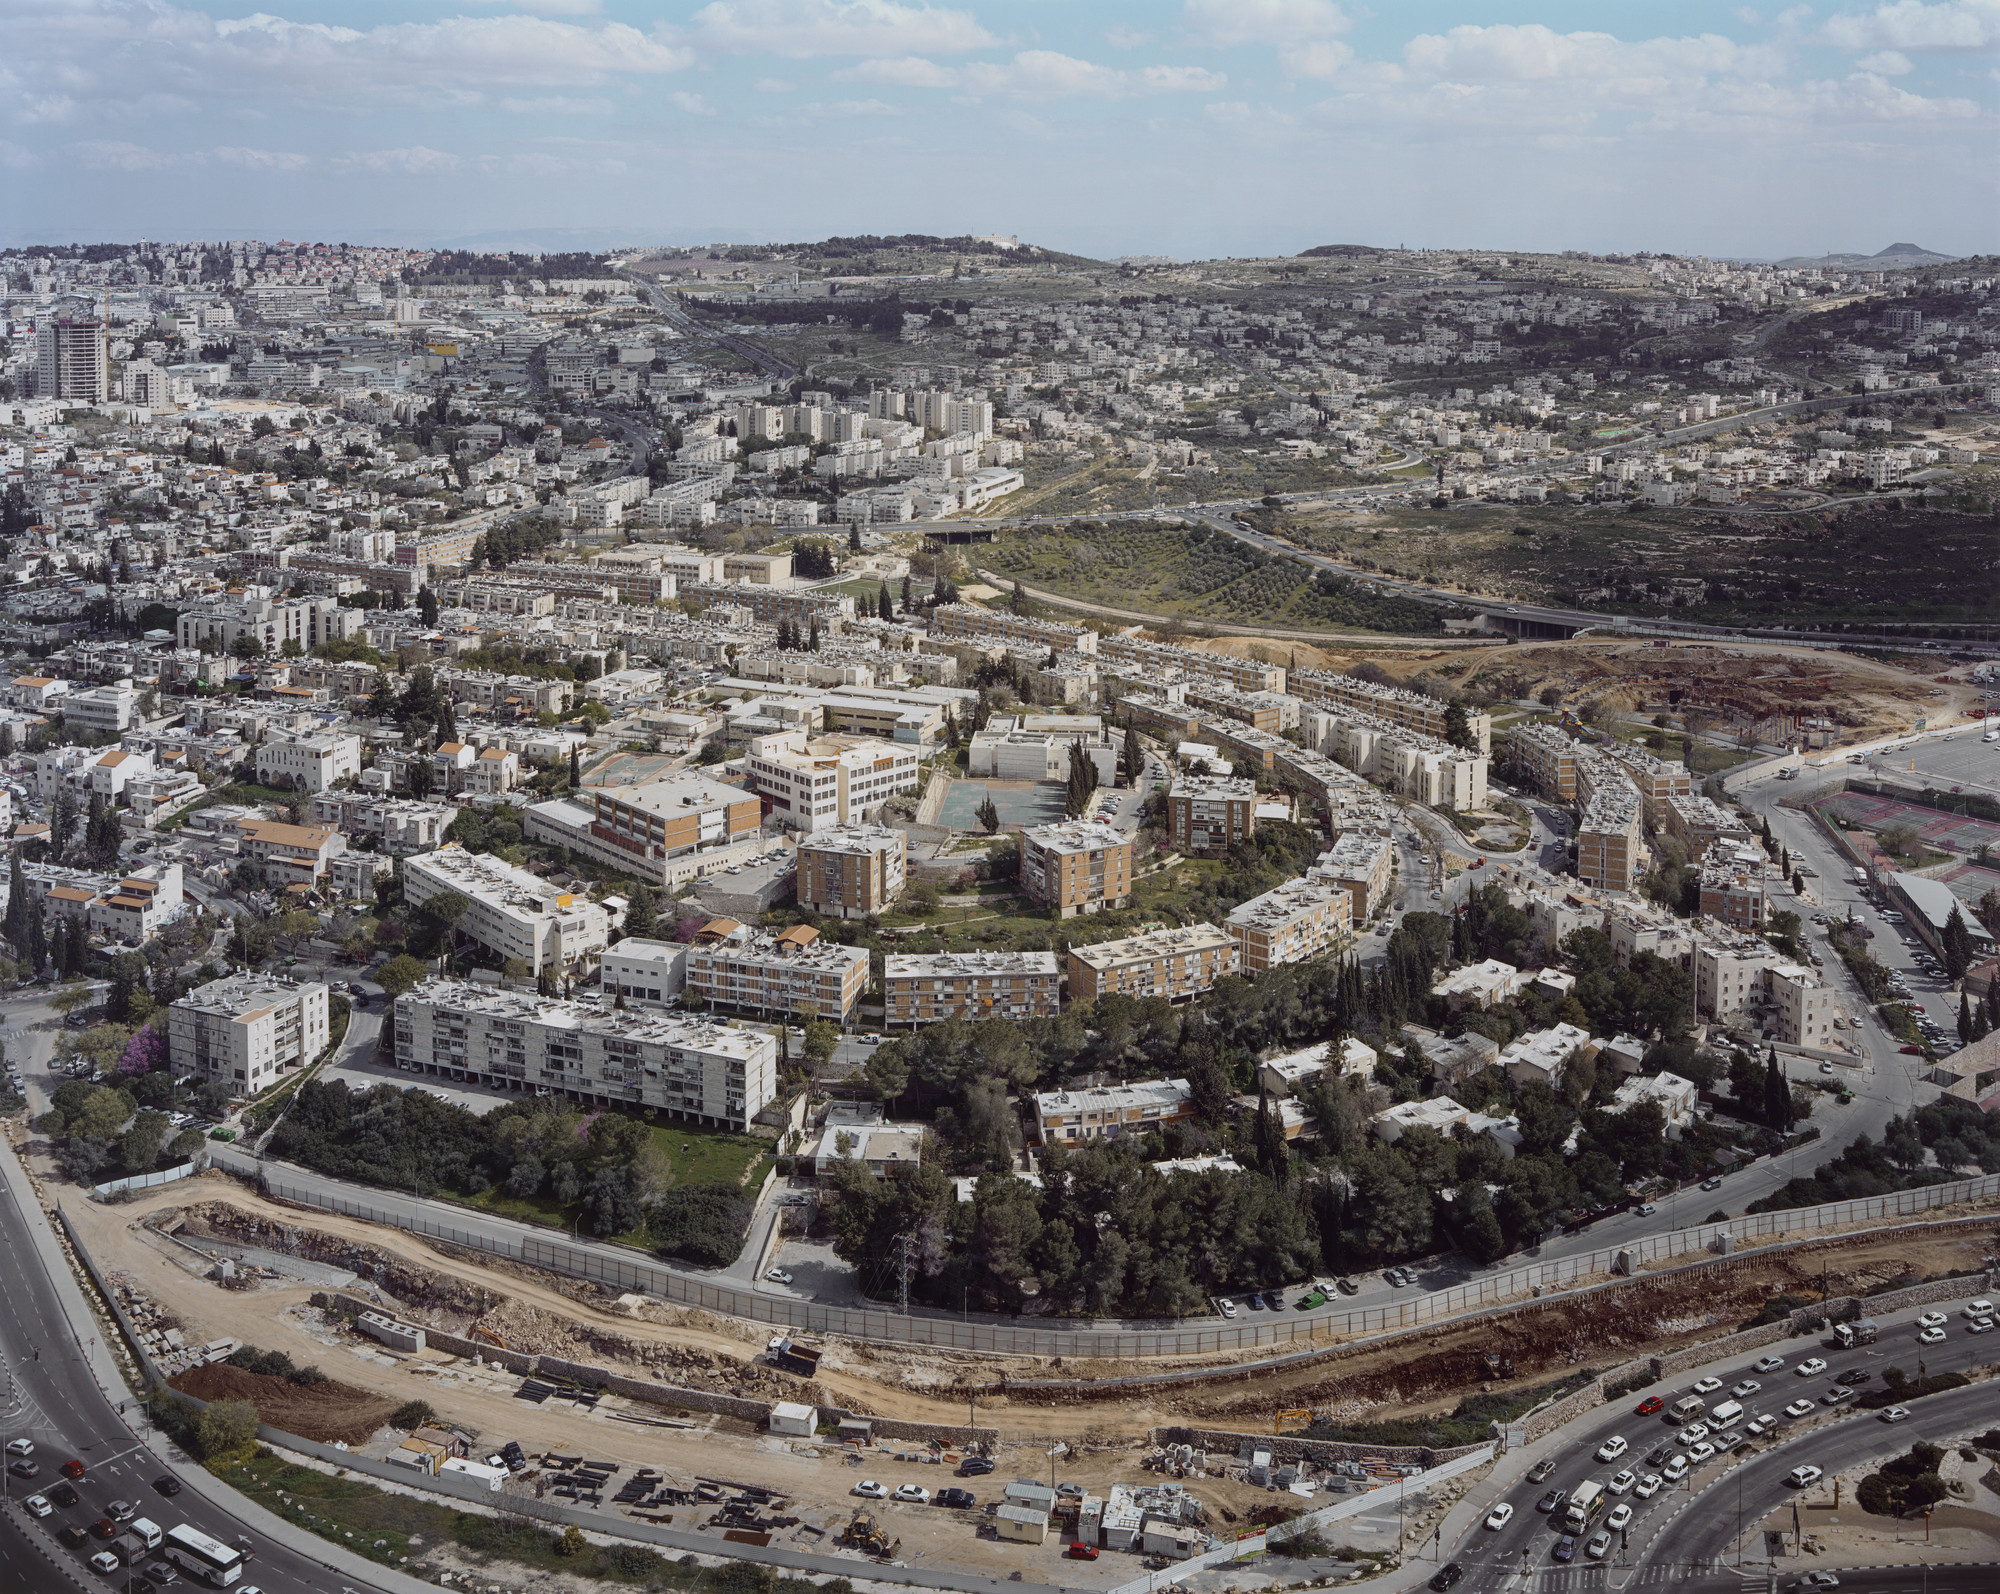 Stephen Shore. Beit Safāfā, Jerusalem, Israel, March 22, 2011. 2011